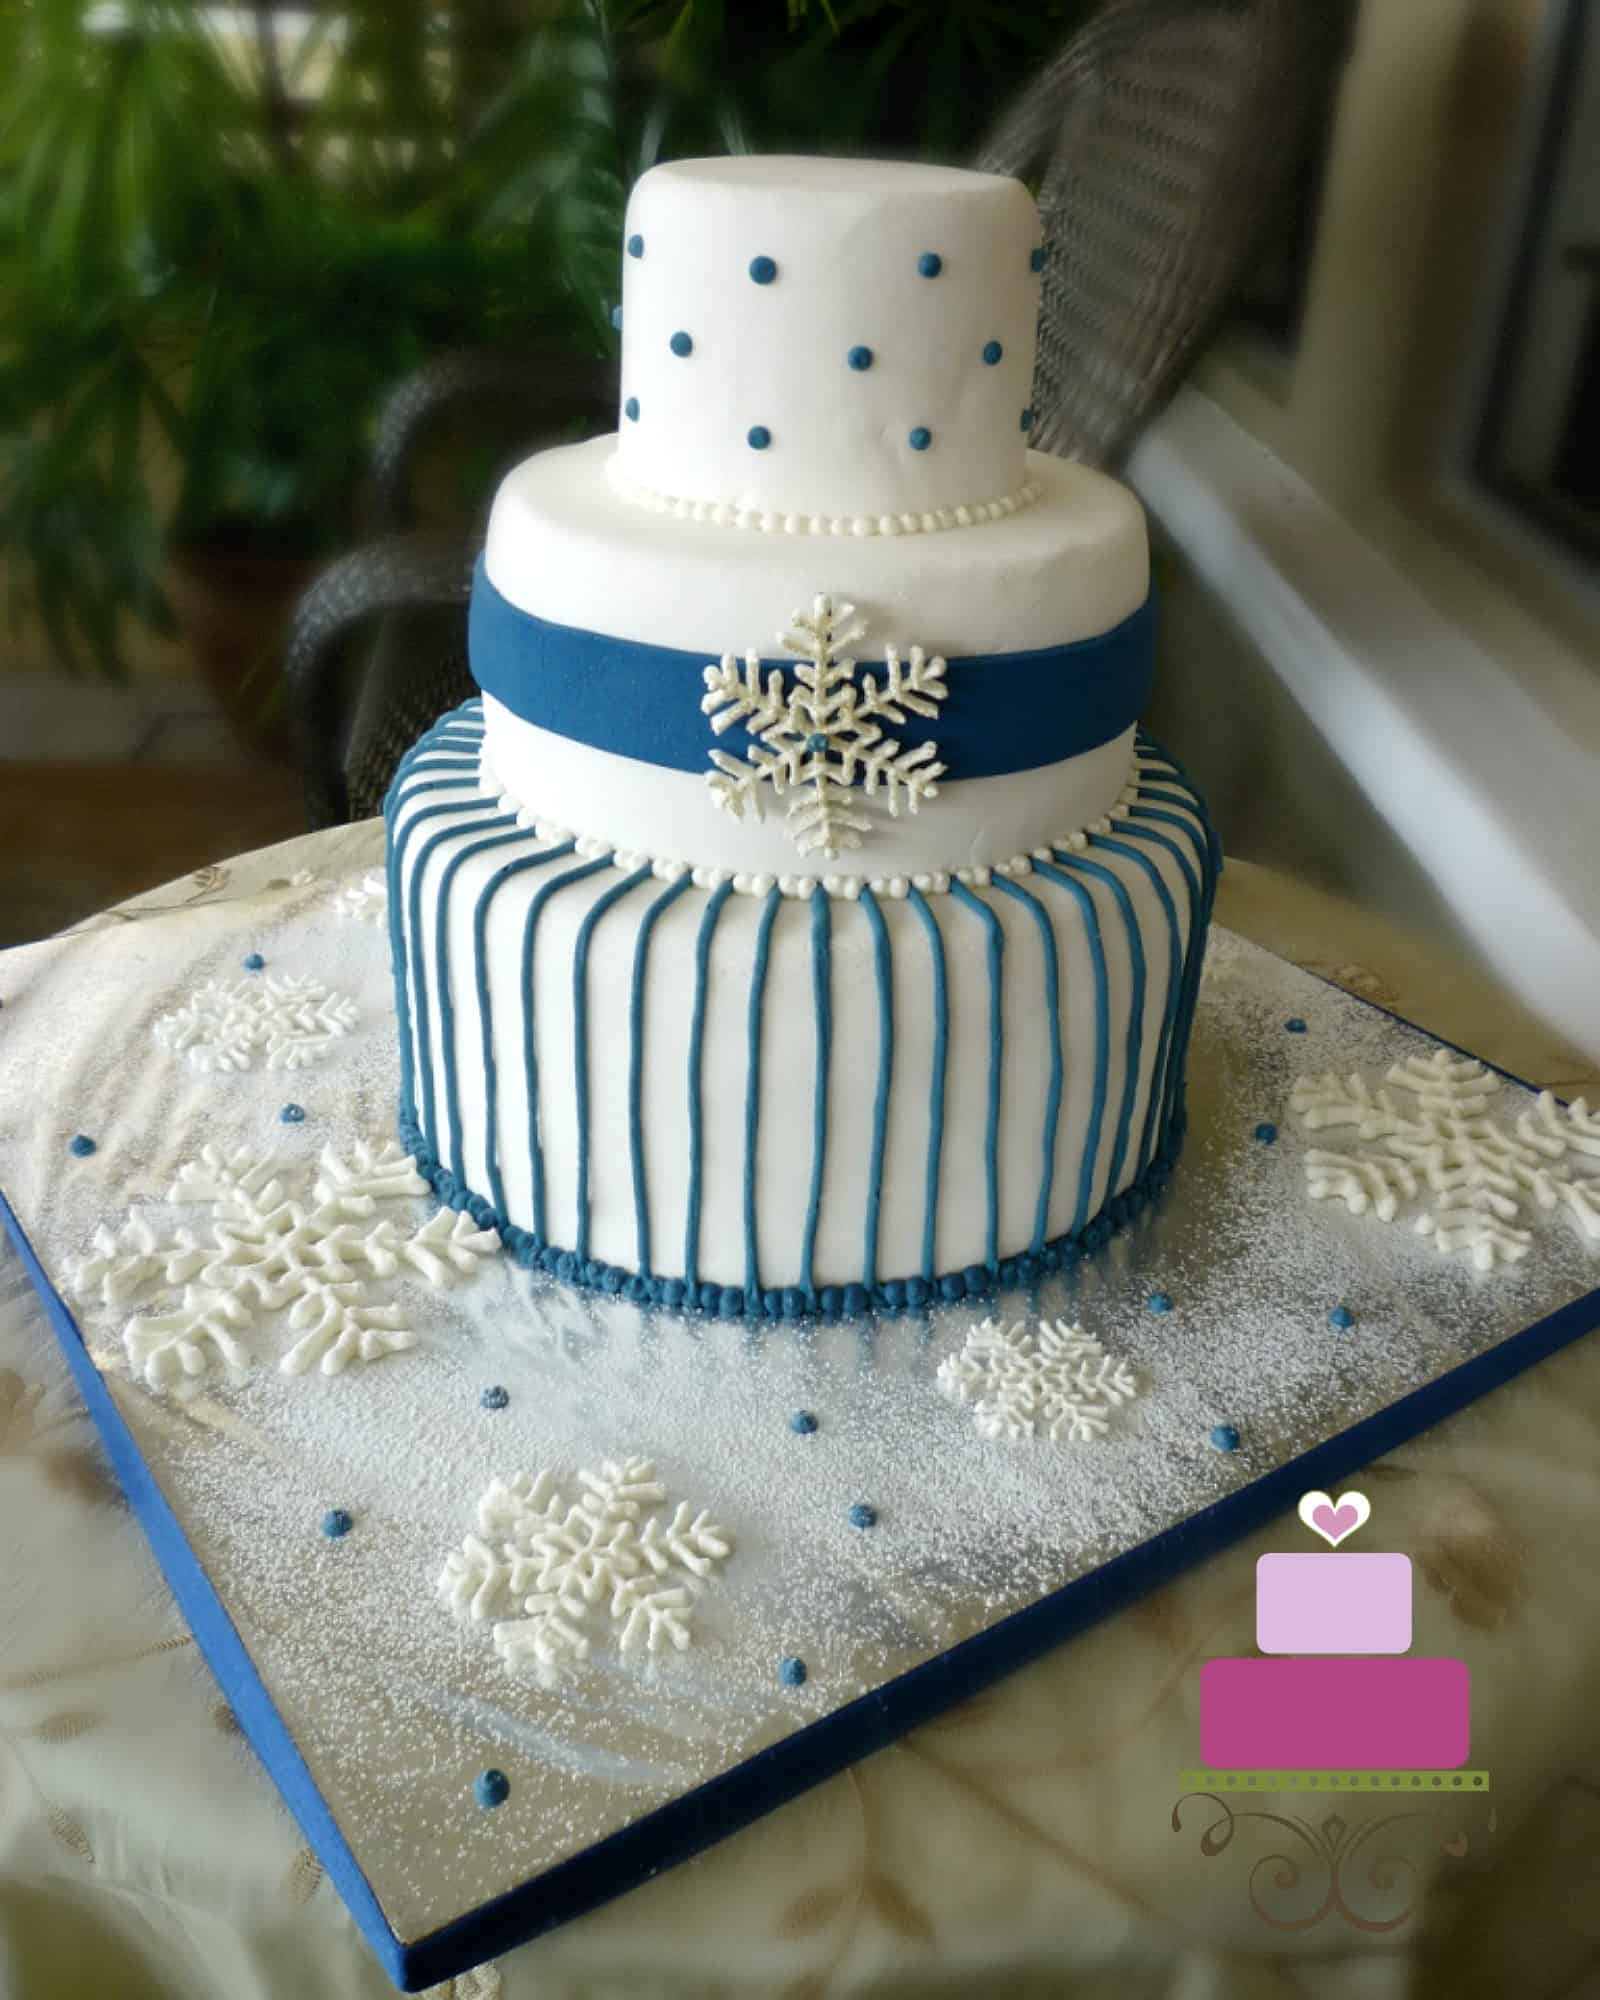 A three tier white cake decorated with blue stripes and white royal icing snowflake.